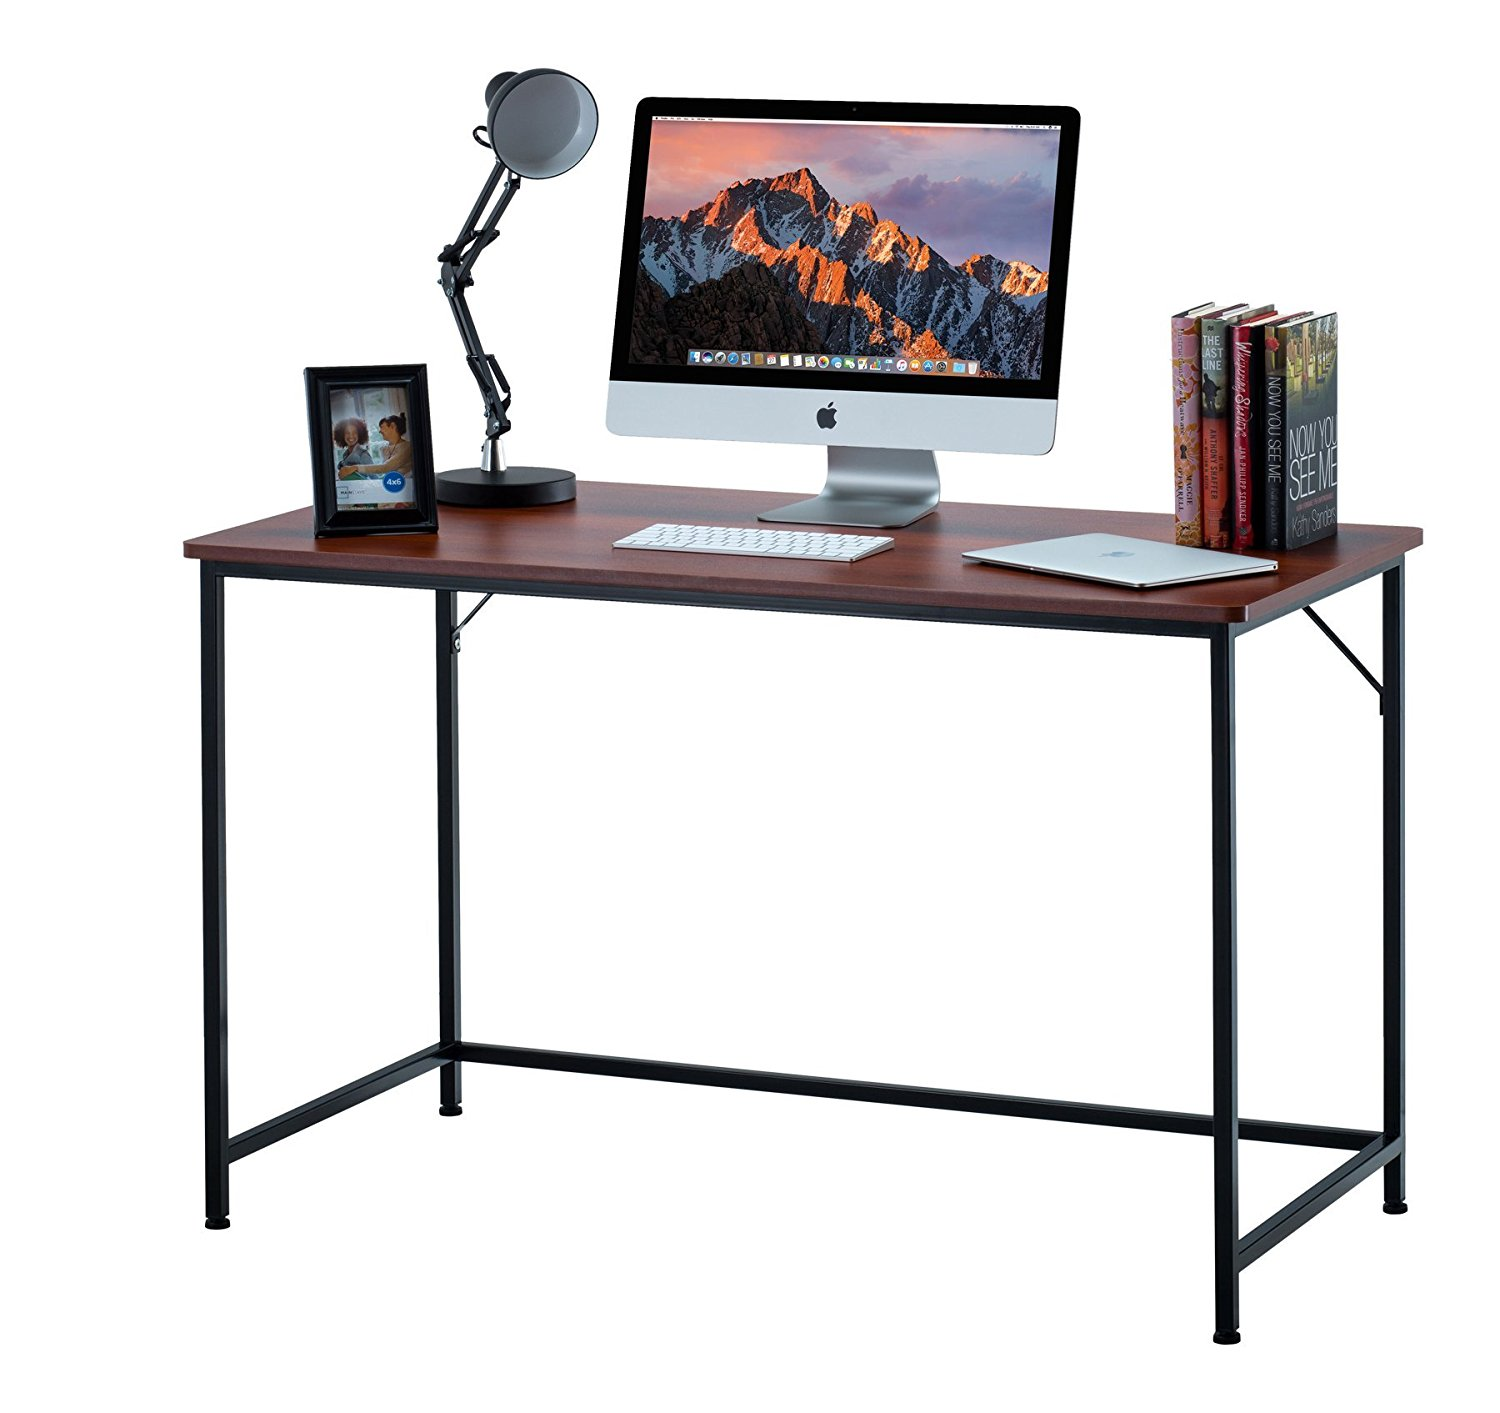 Top 10 Best Cheap Computer Desks Under 50 In 2019 Reviews